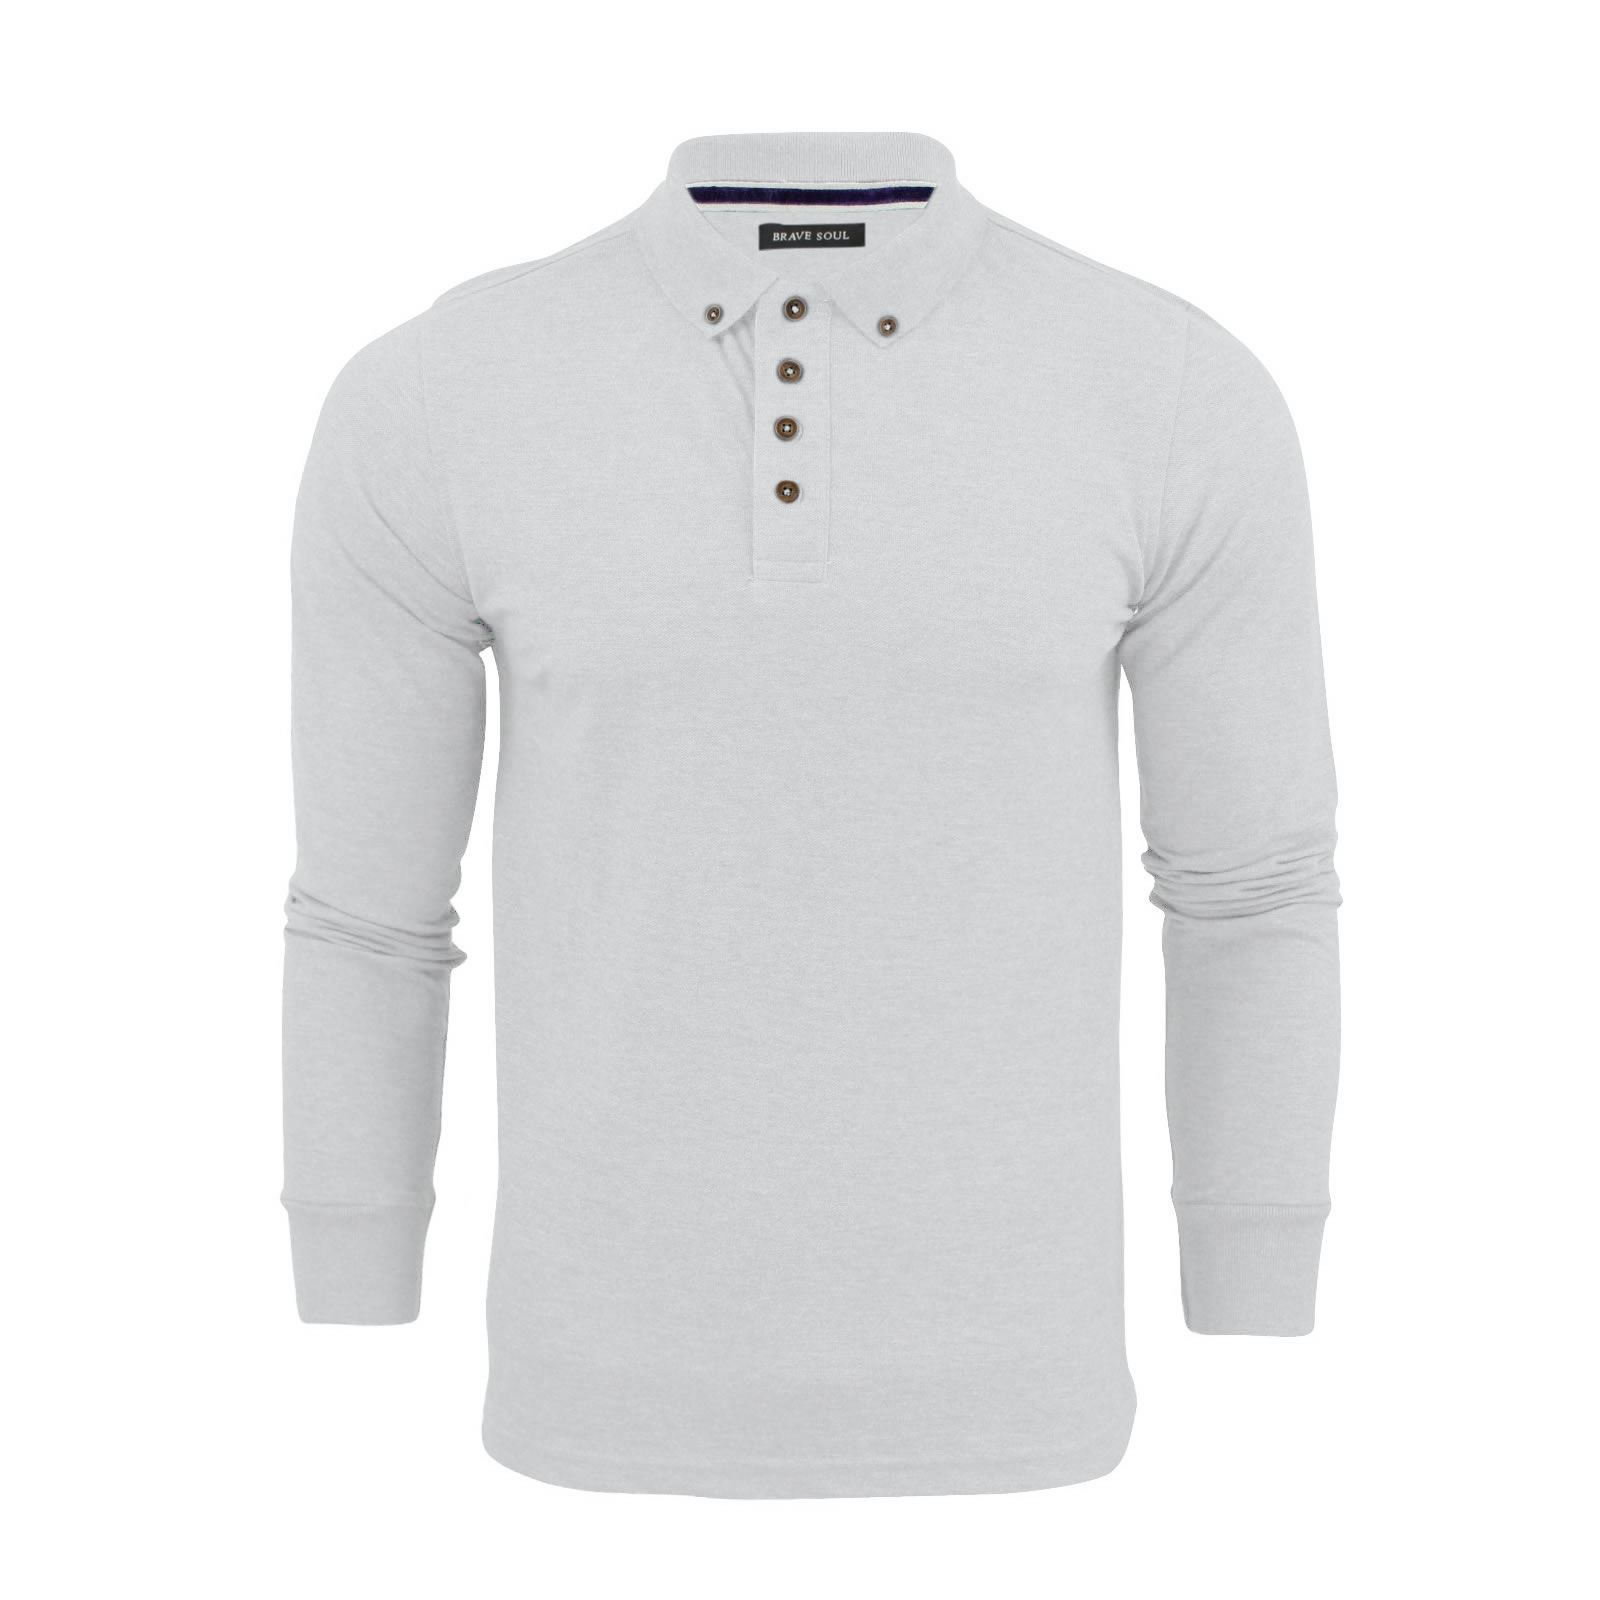 Brave-Soul-Lincoln-Mens-Polo-T-Shirt-Long-Sleeve-Cotton-Pique-Casual-Top thumbnail 34